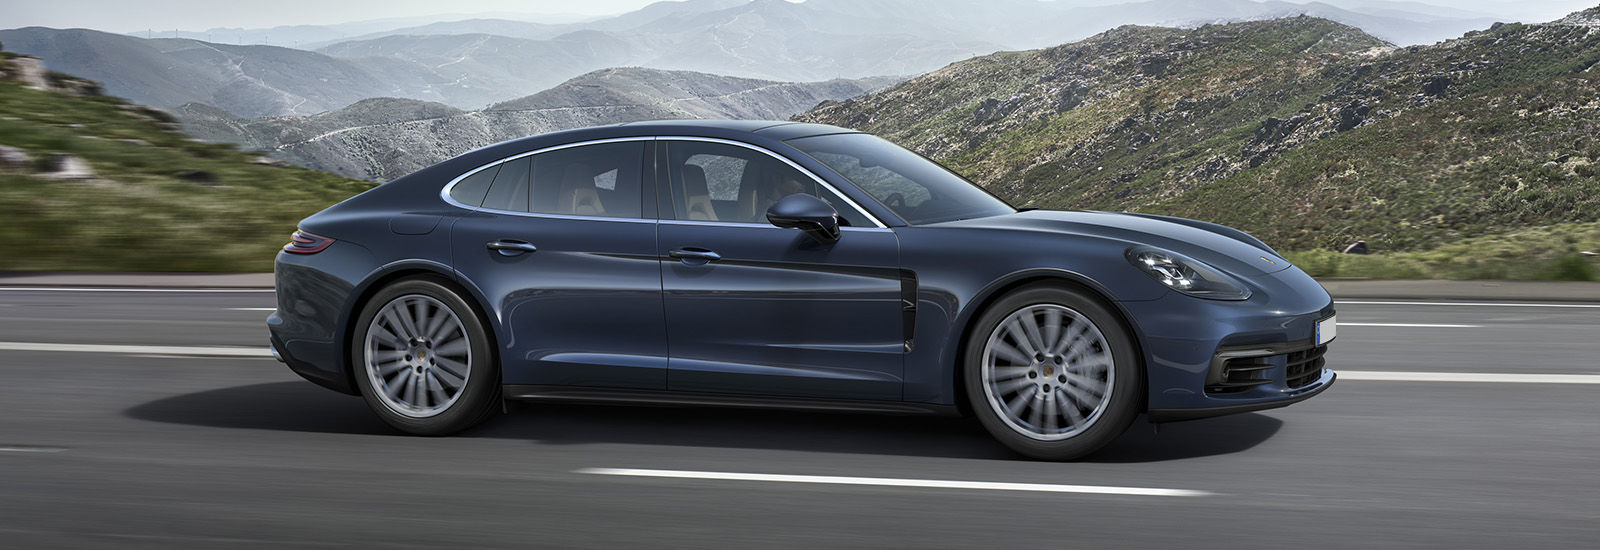 New Porsche Panamera price specs and release date  carwow